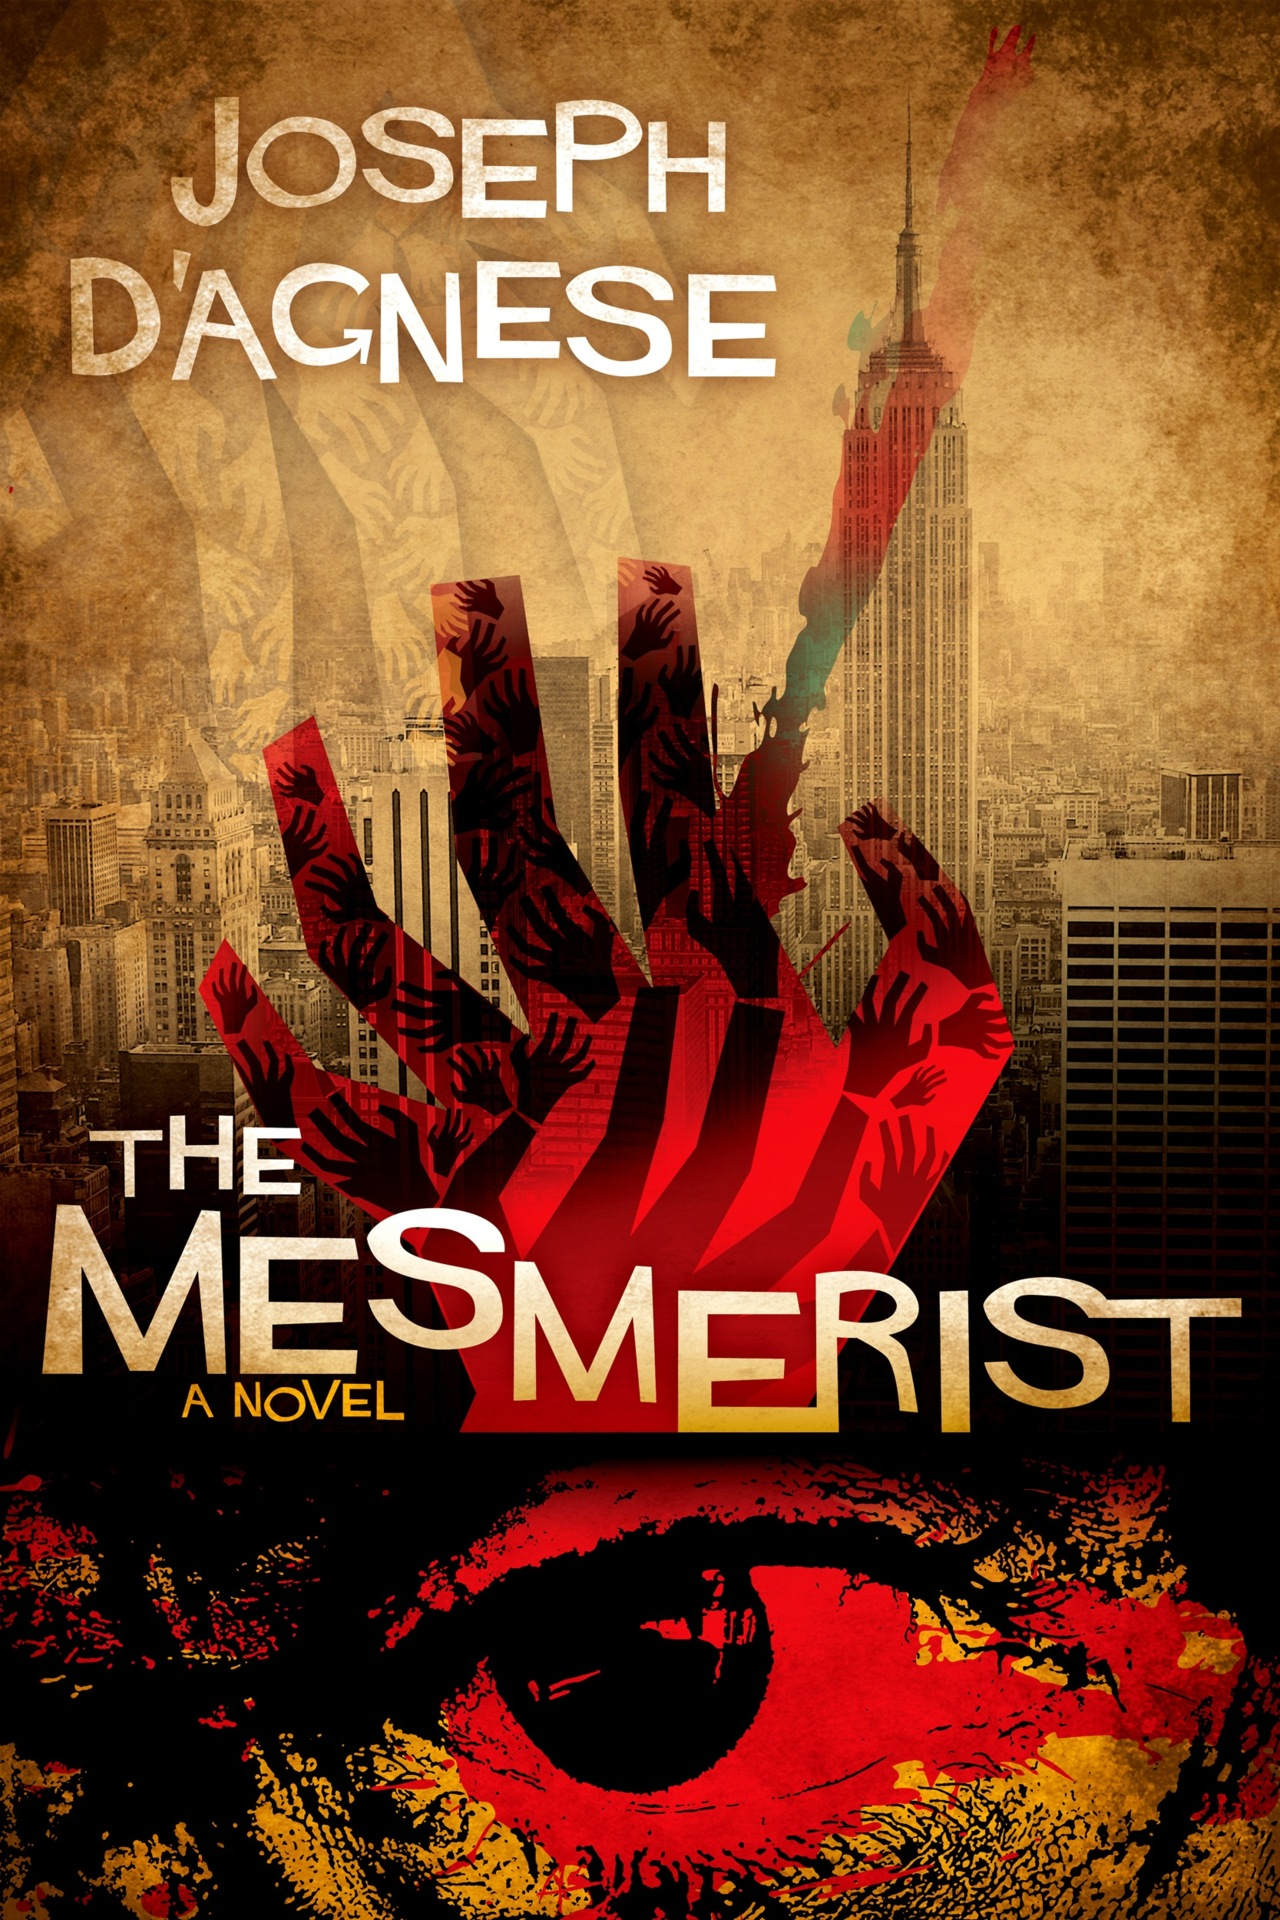 THE MESMERIST:   An occult detective tracks a murderer in an alt-version of 1979 New York City, in an era when looks can kill and hands can heal. Urban fantasy noir, 85,000 words.    Available:     Kindle (US)     Kindle (UK)     Nook     iPad     Smashwords     Kobo     Paperback